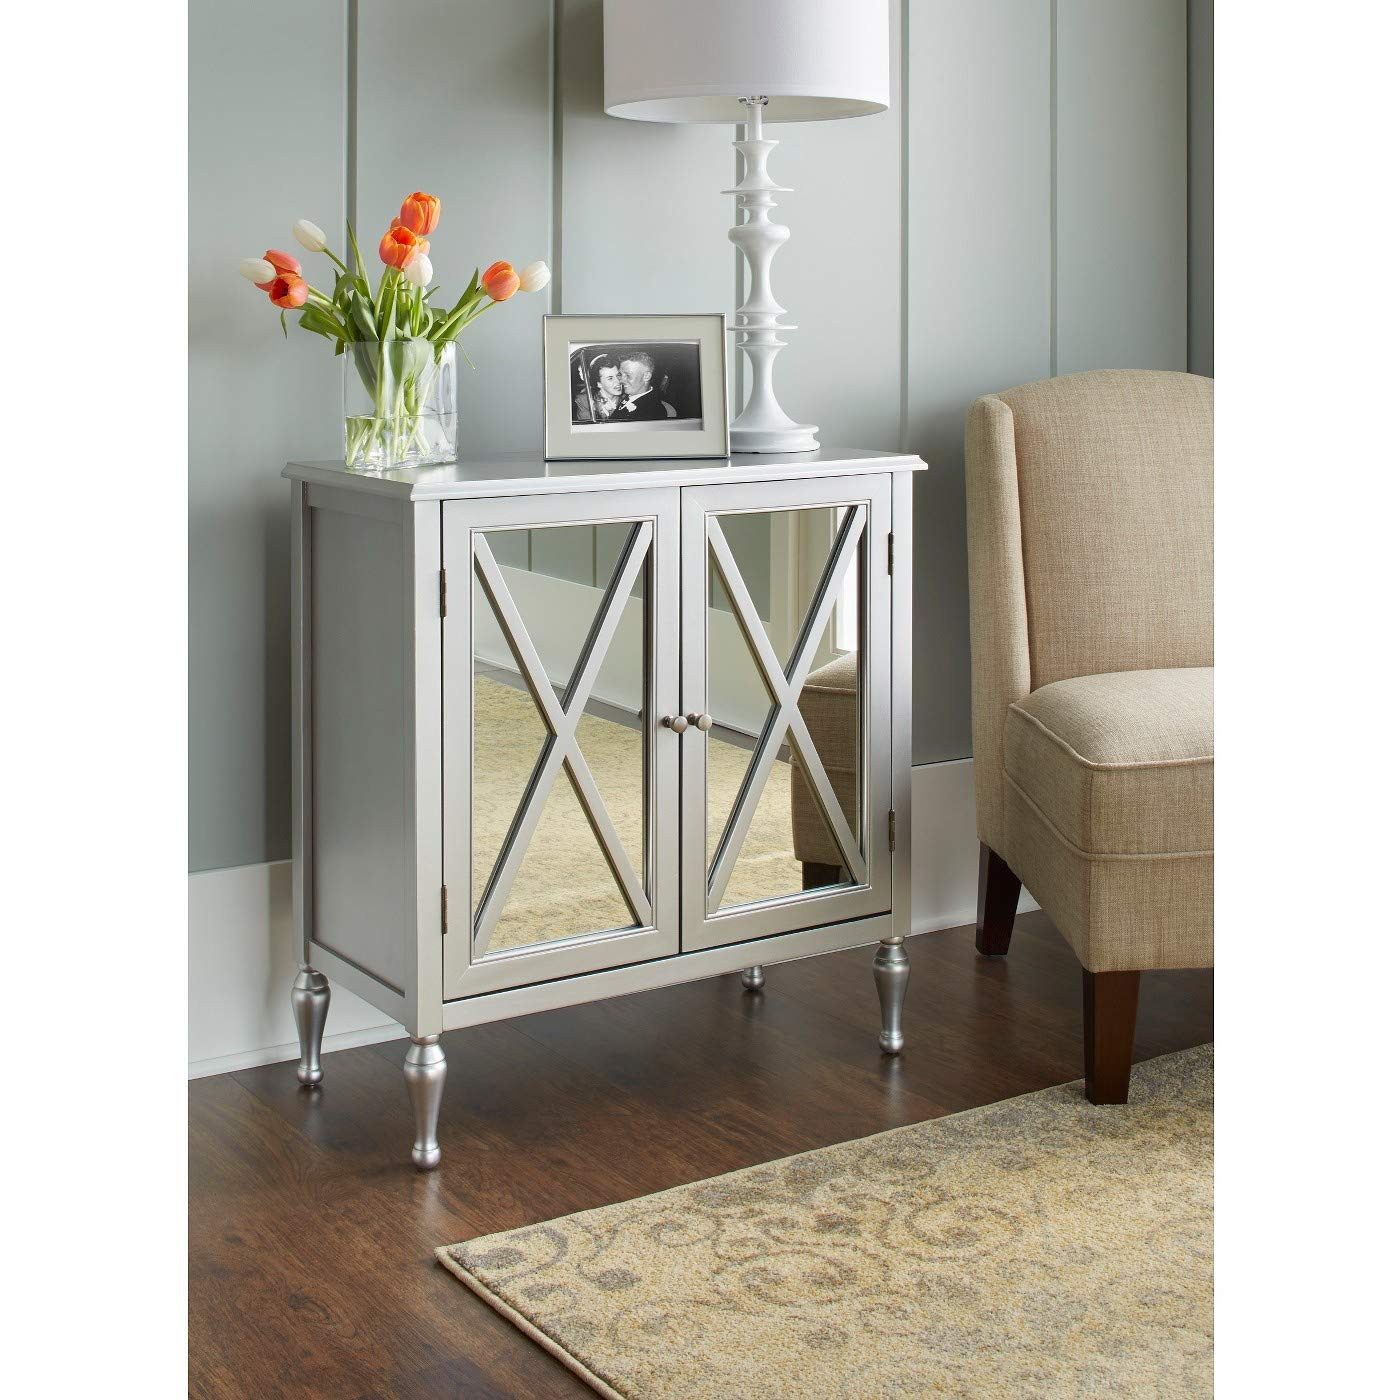 hollywood mirrored accent cabinet champagne kitchen table dining with drink cooler nate berkus high and chairs solid oak door thresholds country decorating ideas bar height